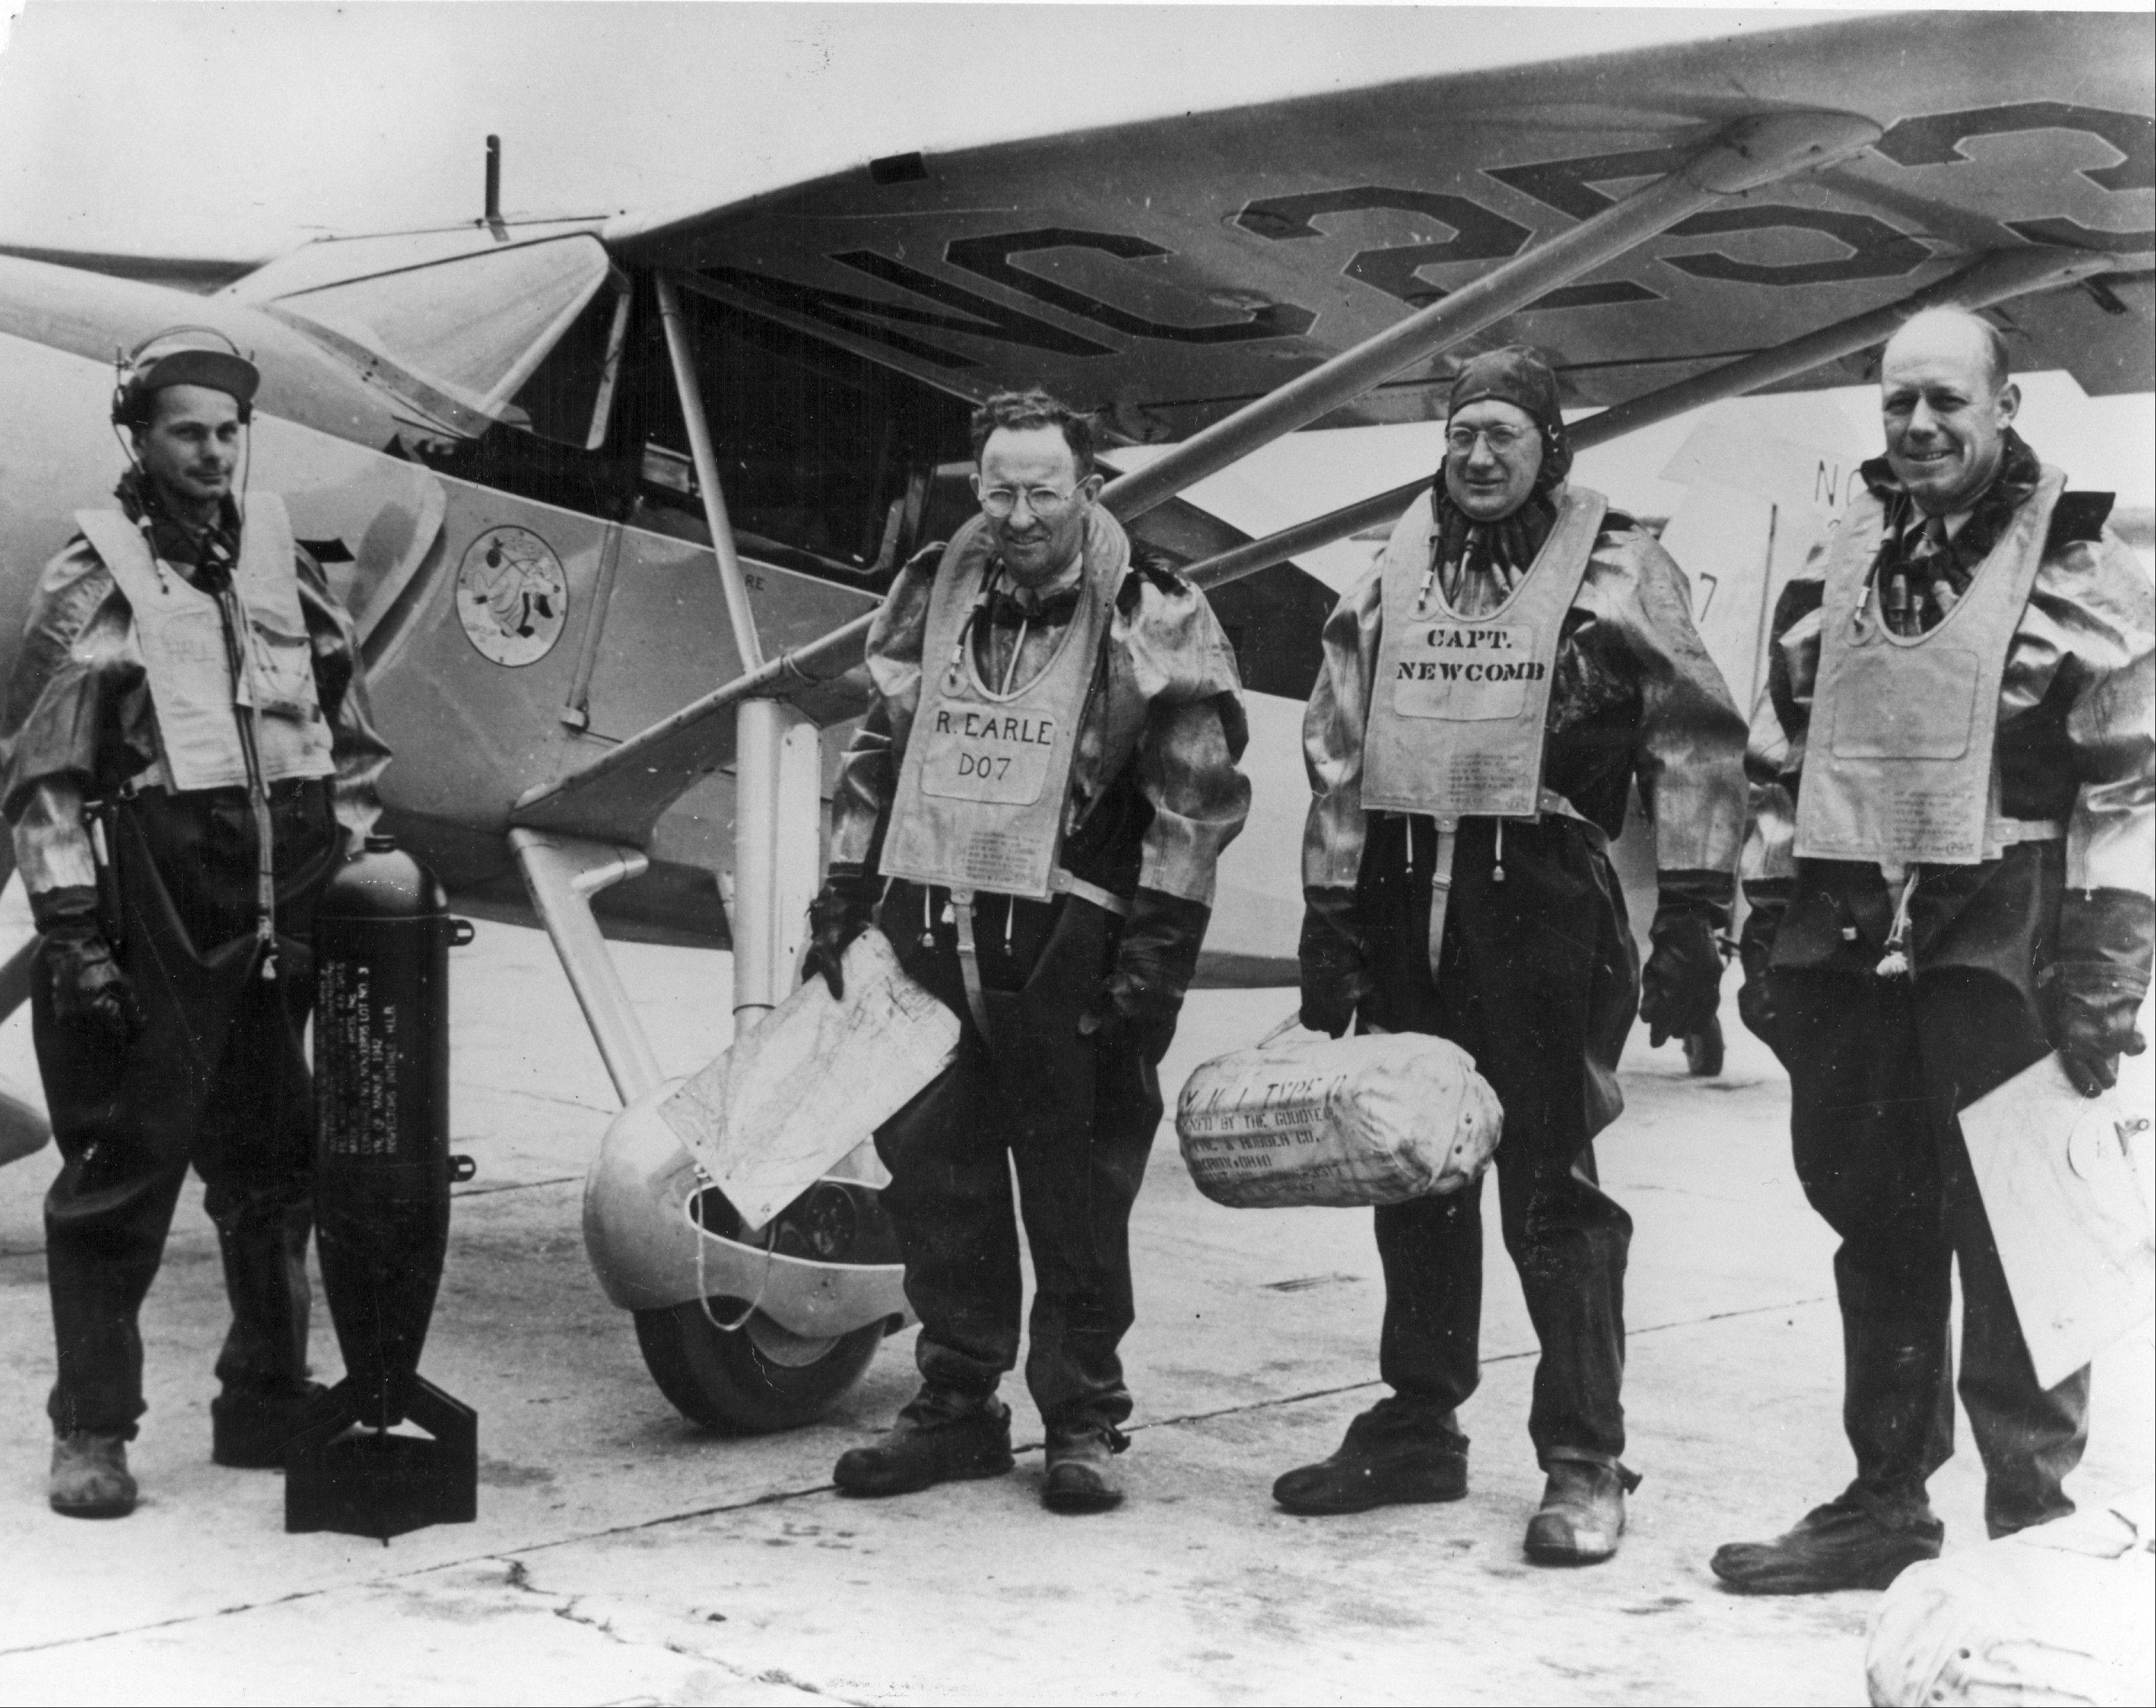 These civilian volunteers played a key role during World War II, running rescue missions and even sinking enemy submarines. Now the Civil Air Patrol is trying to get Congress to honor that effort.